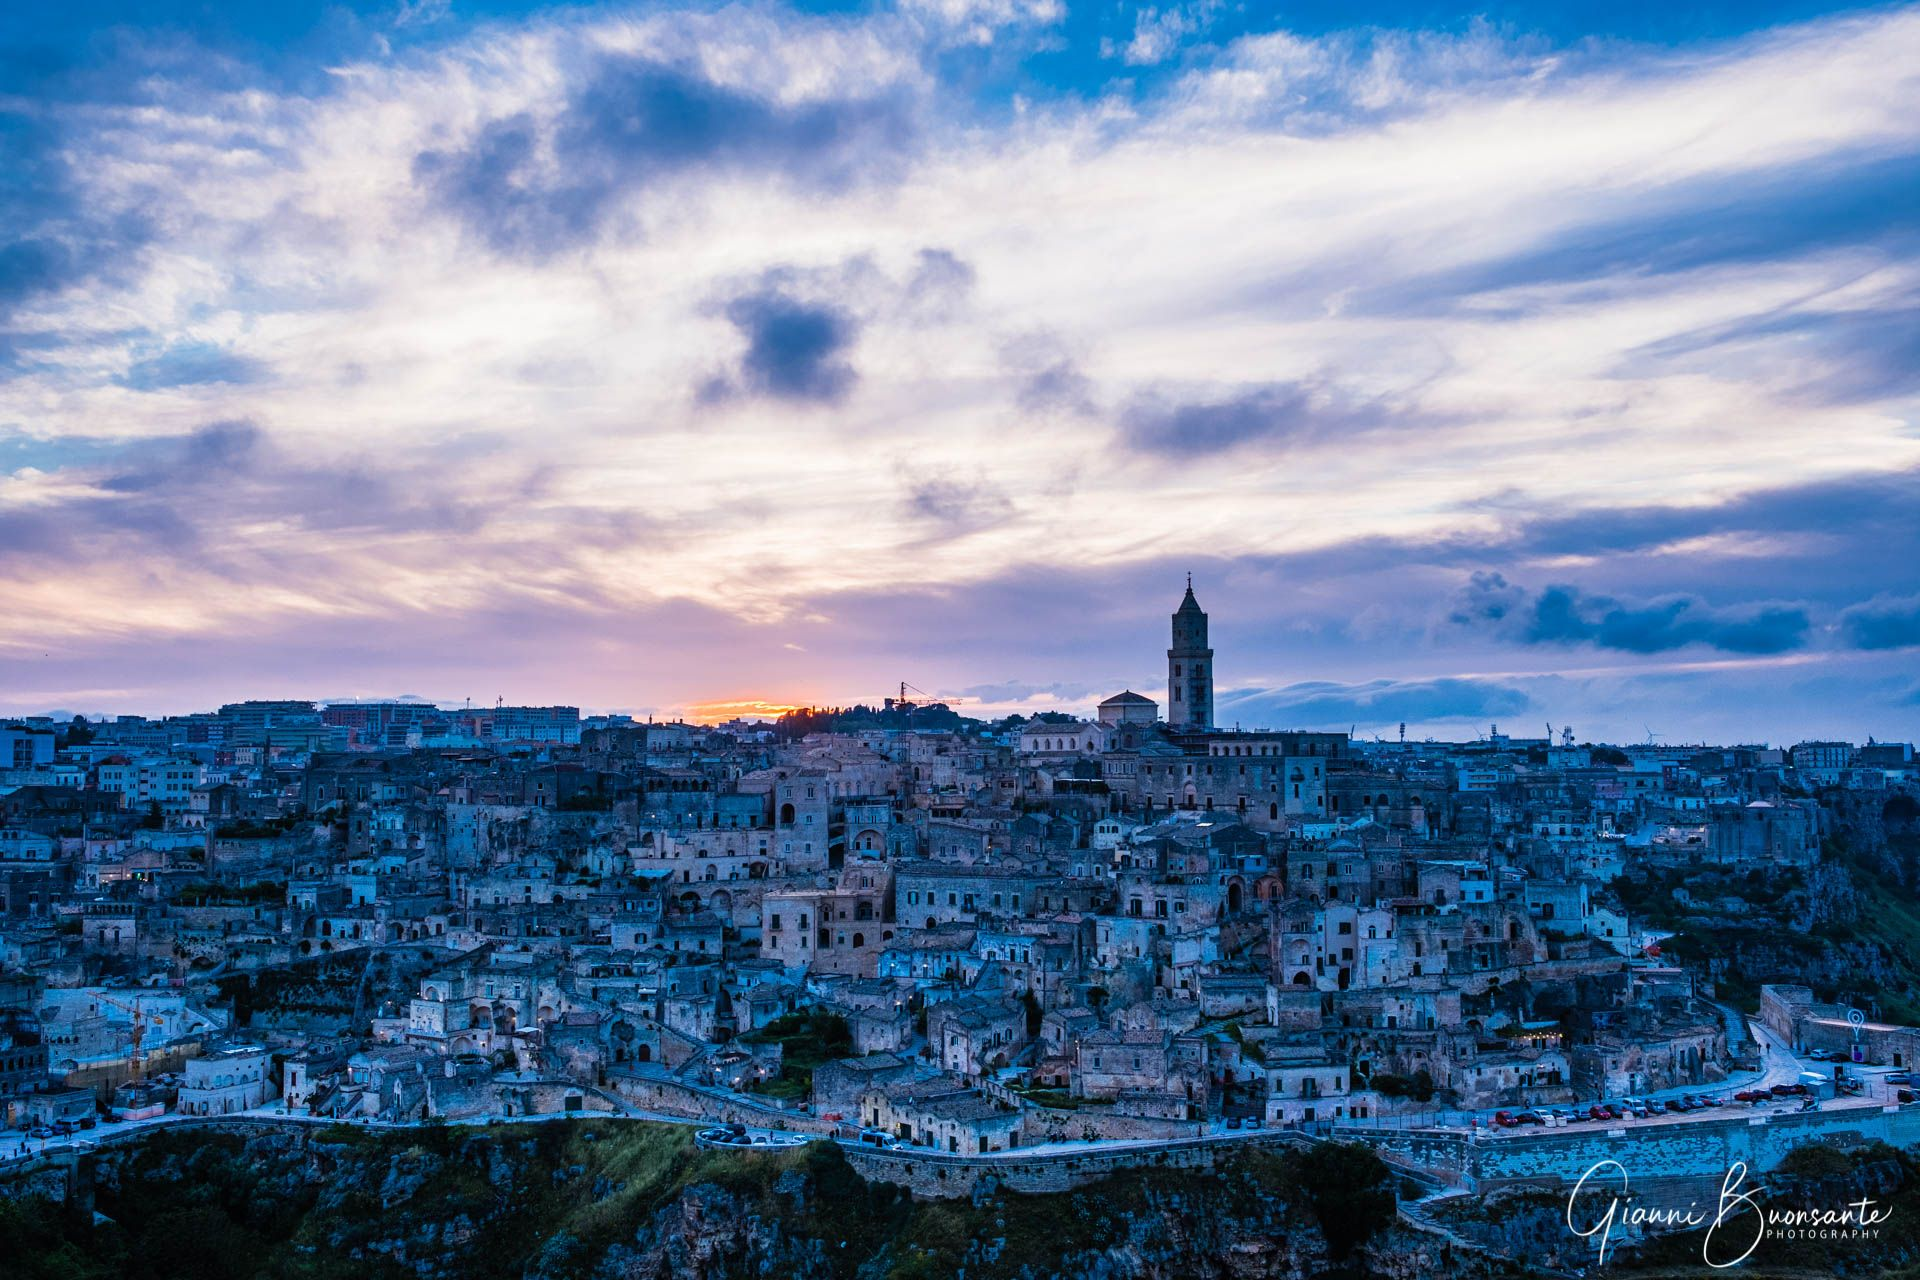 Matera European Capital of Culture 2019